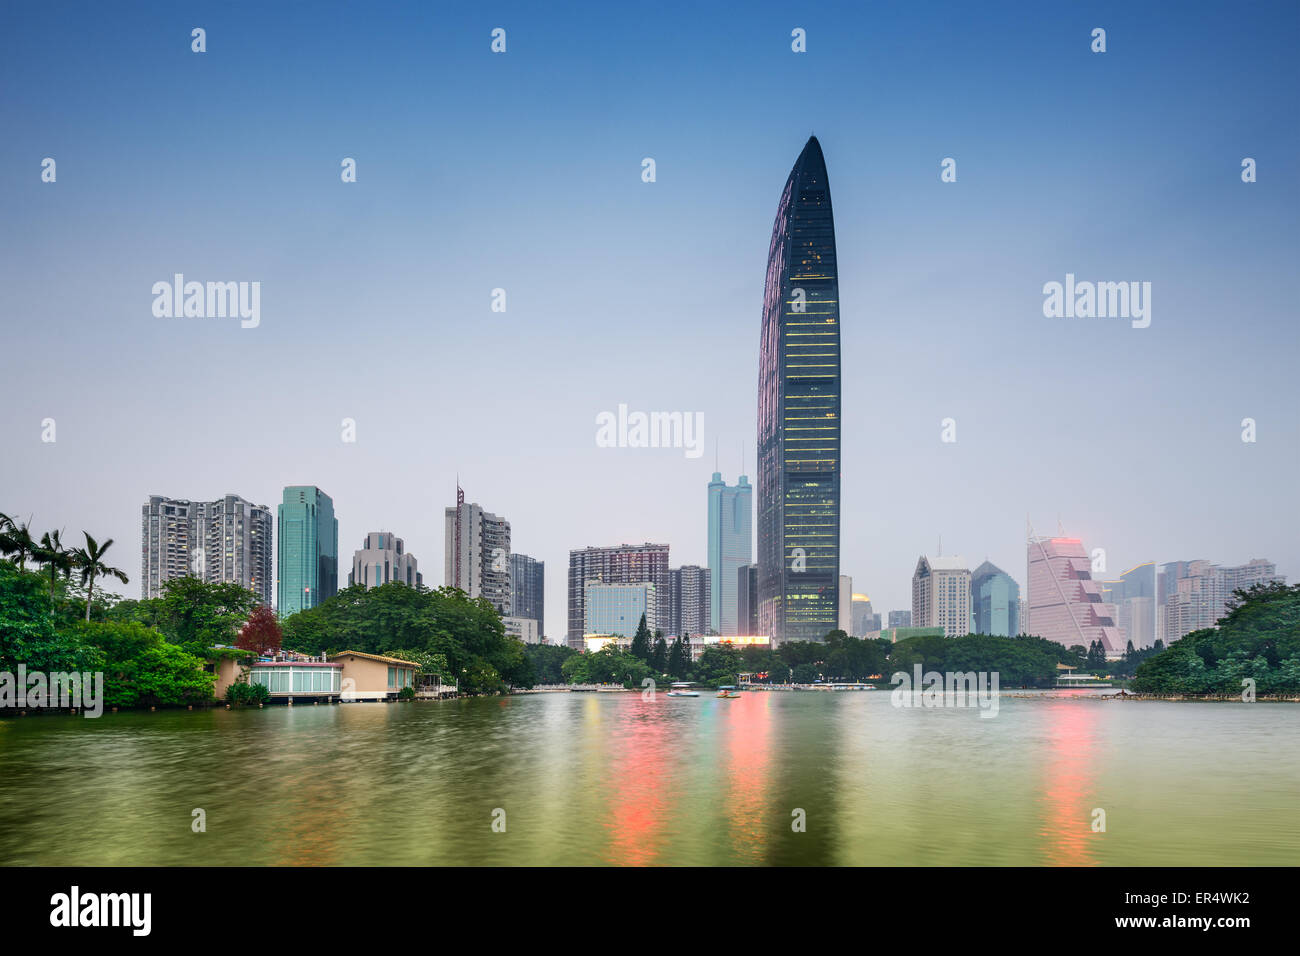 Shenzhen, China downtown skyline from Lychee Park. - Stock Image